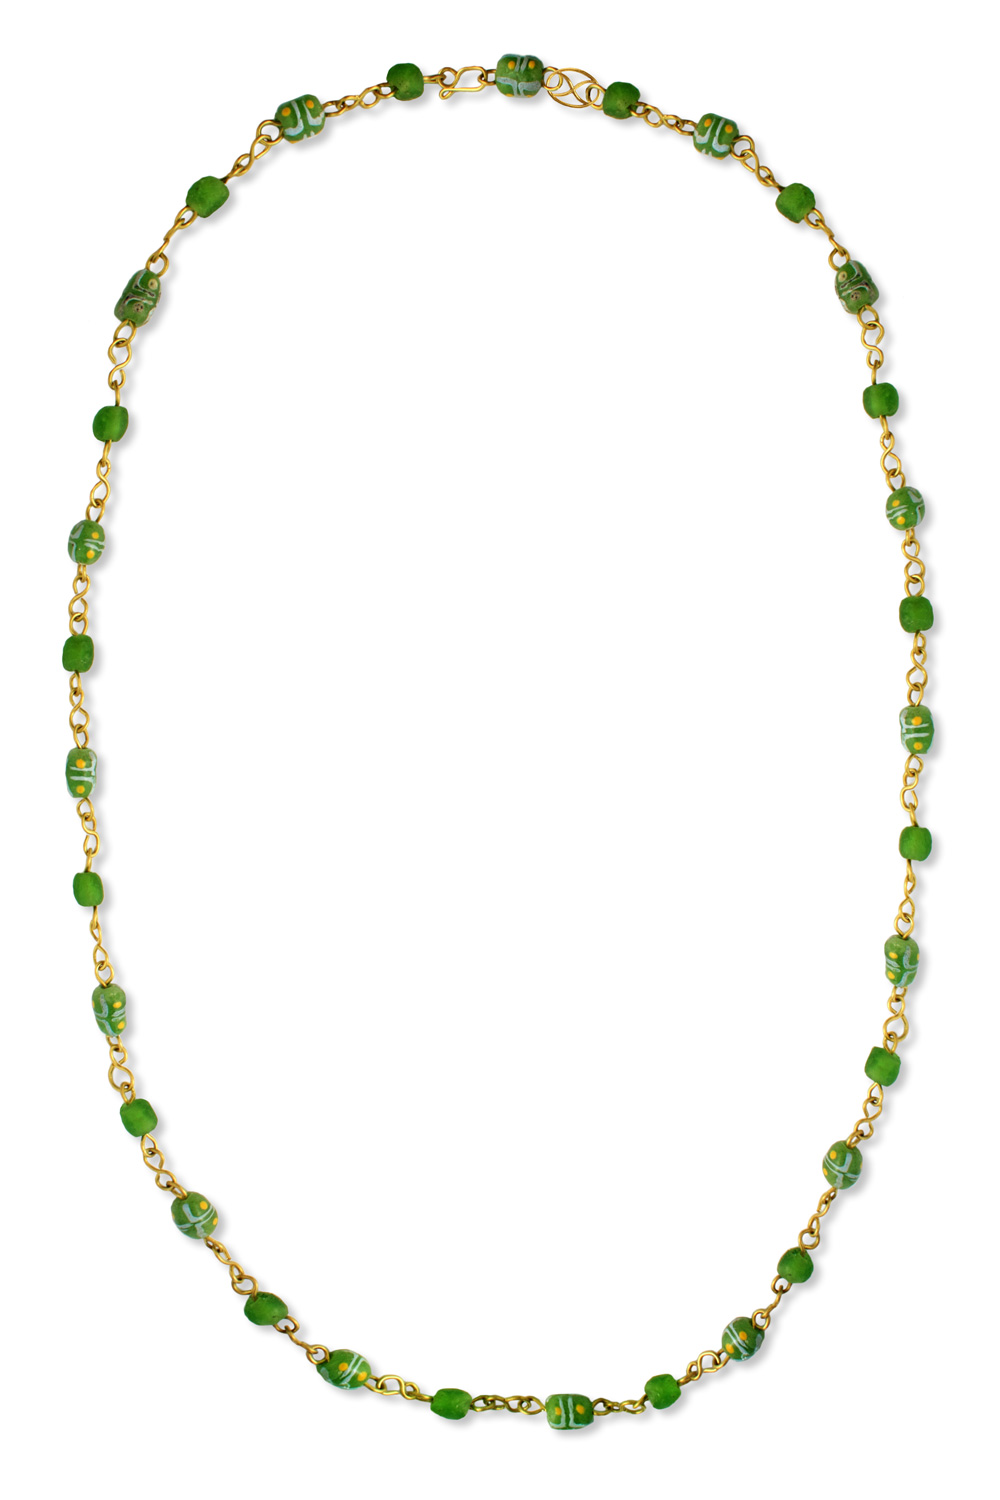 Green African Trade Beads Necklace by SHIKHAZURI